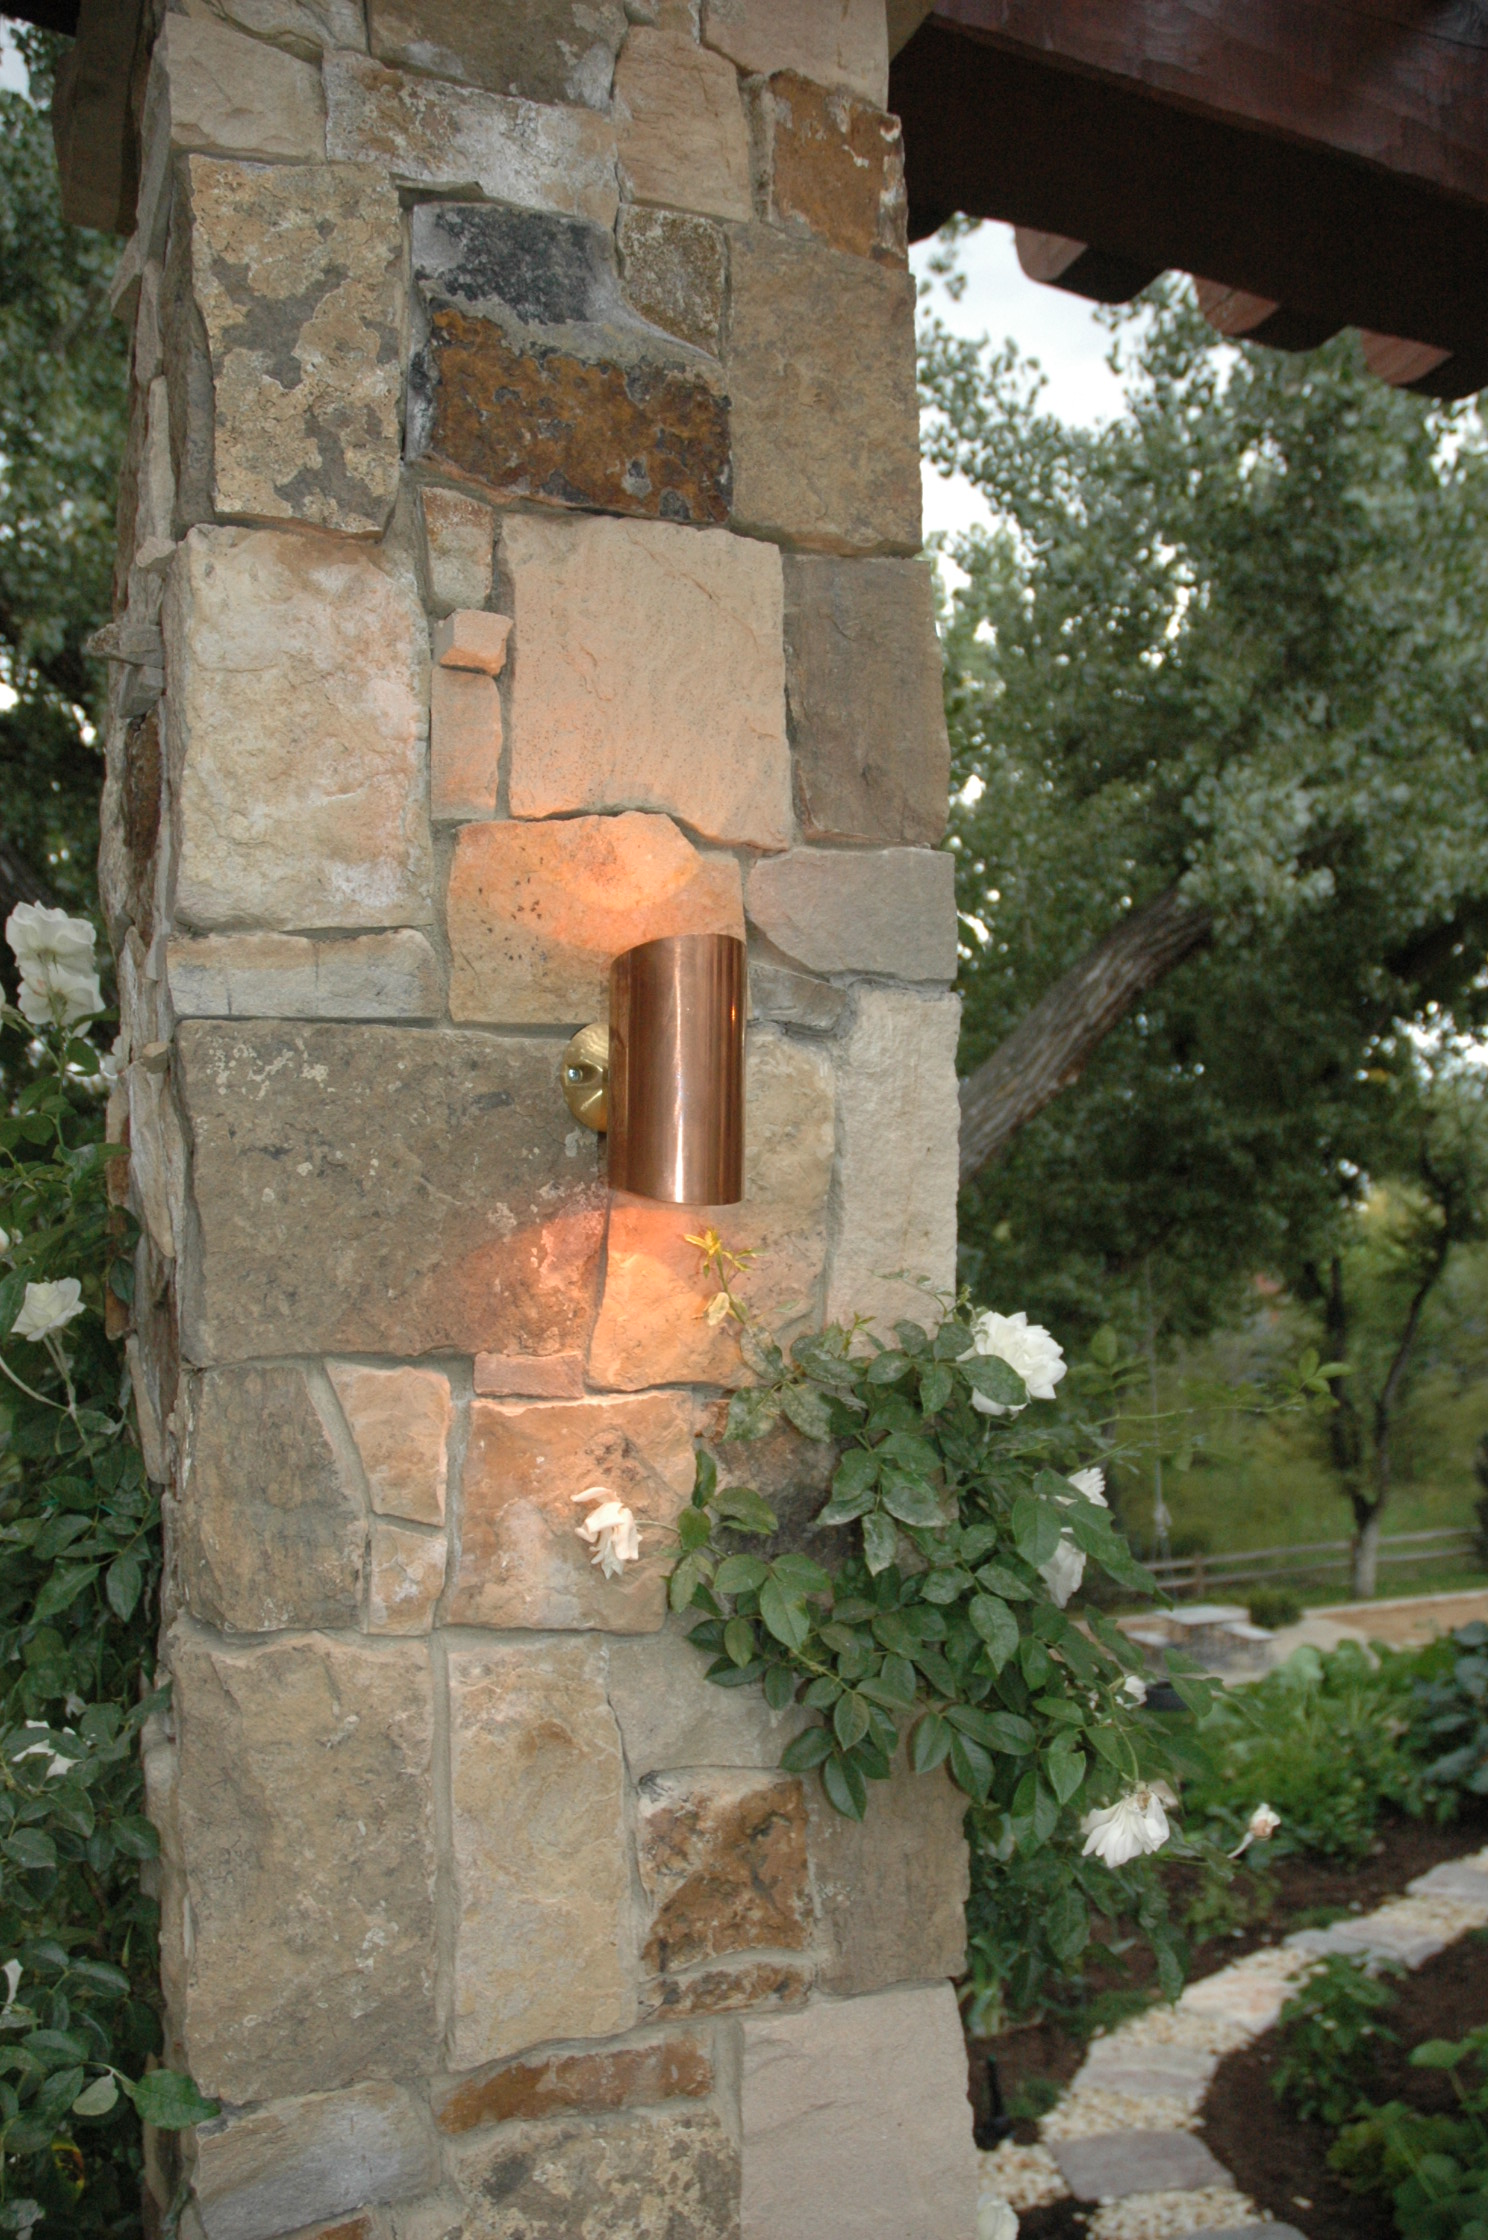 Cherry Hills Village Tuscan-inspired pergola. At this Tuscan-inspired pergola in Cherry Hills Village, the only lighting the homeowners had for evening dining was a candle candelabra over the table. Outdoor Lighting Perspectives (OLP) installed these 20W quartz halogen copper/brass BB-15 sconce fixtures to both up-light and down- light the beautiful stone columns as well as the vines growing on the pergola structure above. All of this lighting is controllable via one of OLP's intelligent switches that was installed inside the kitchen.